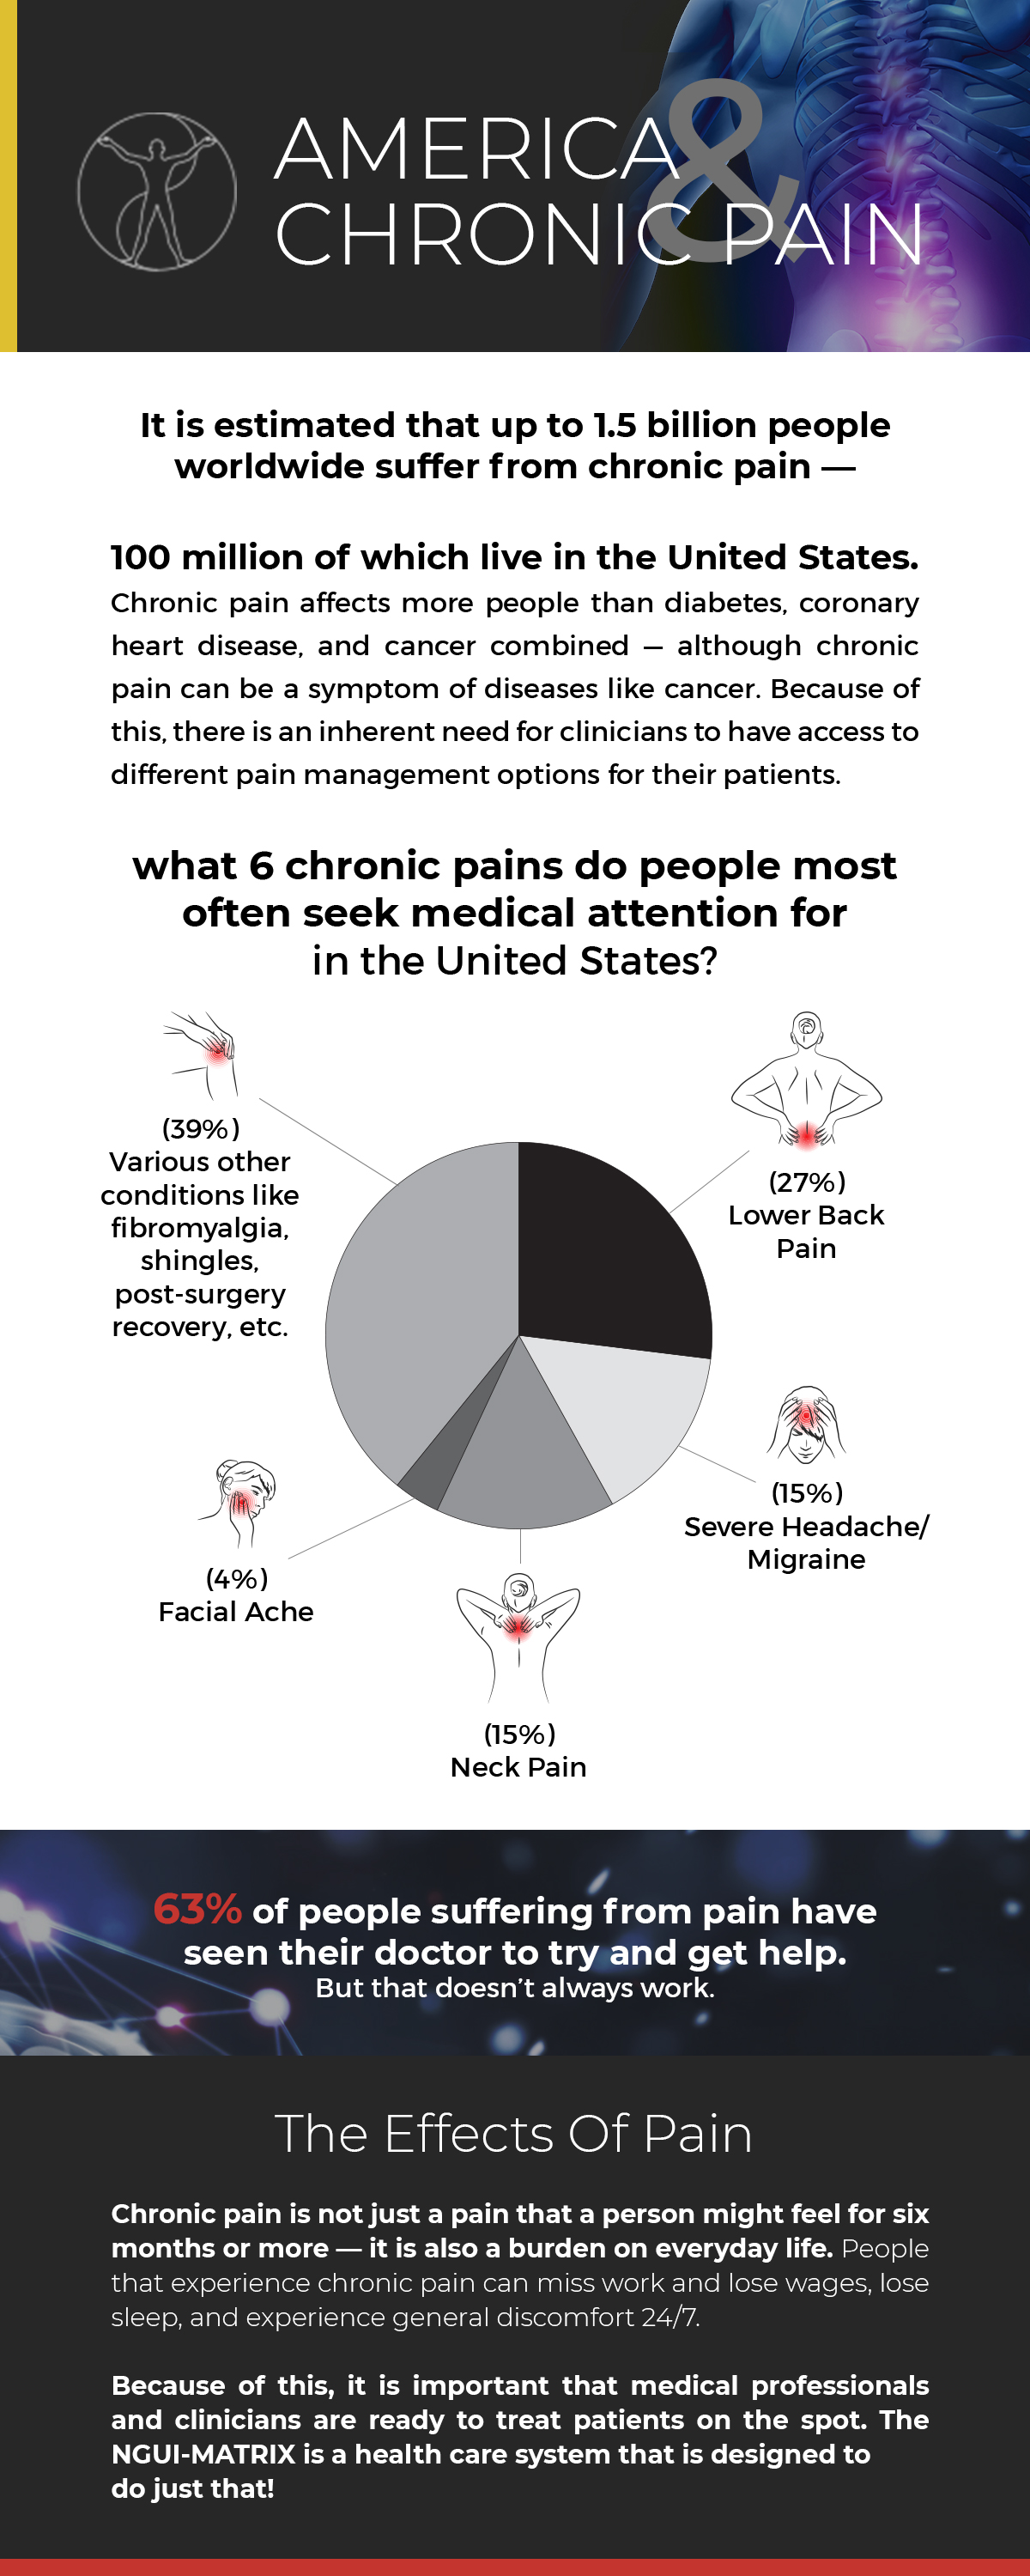 America & Chronic Pain